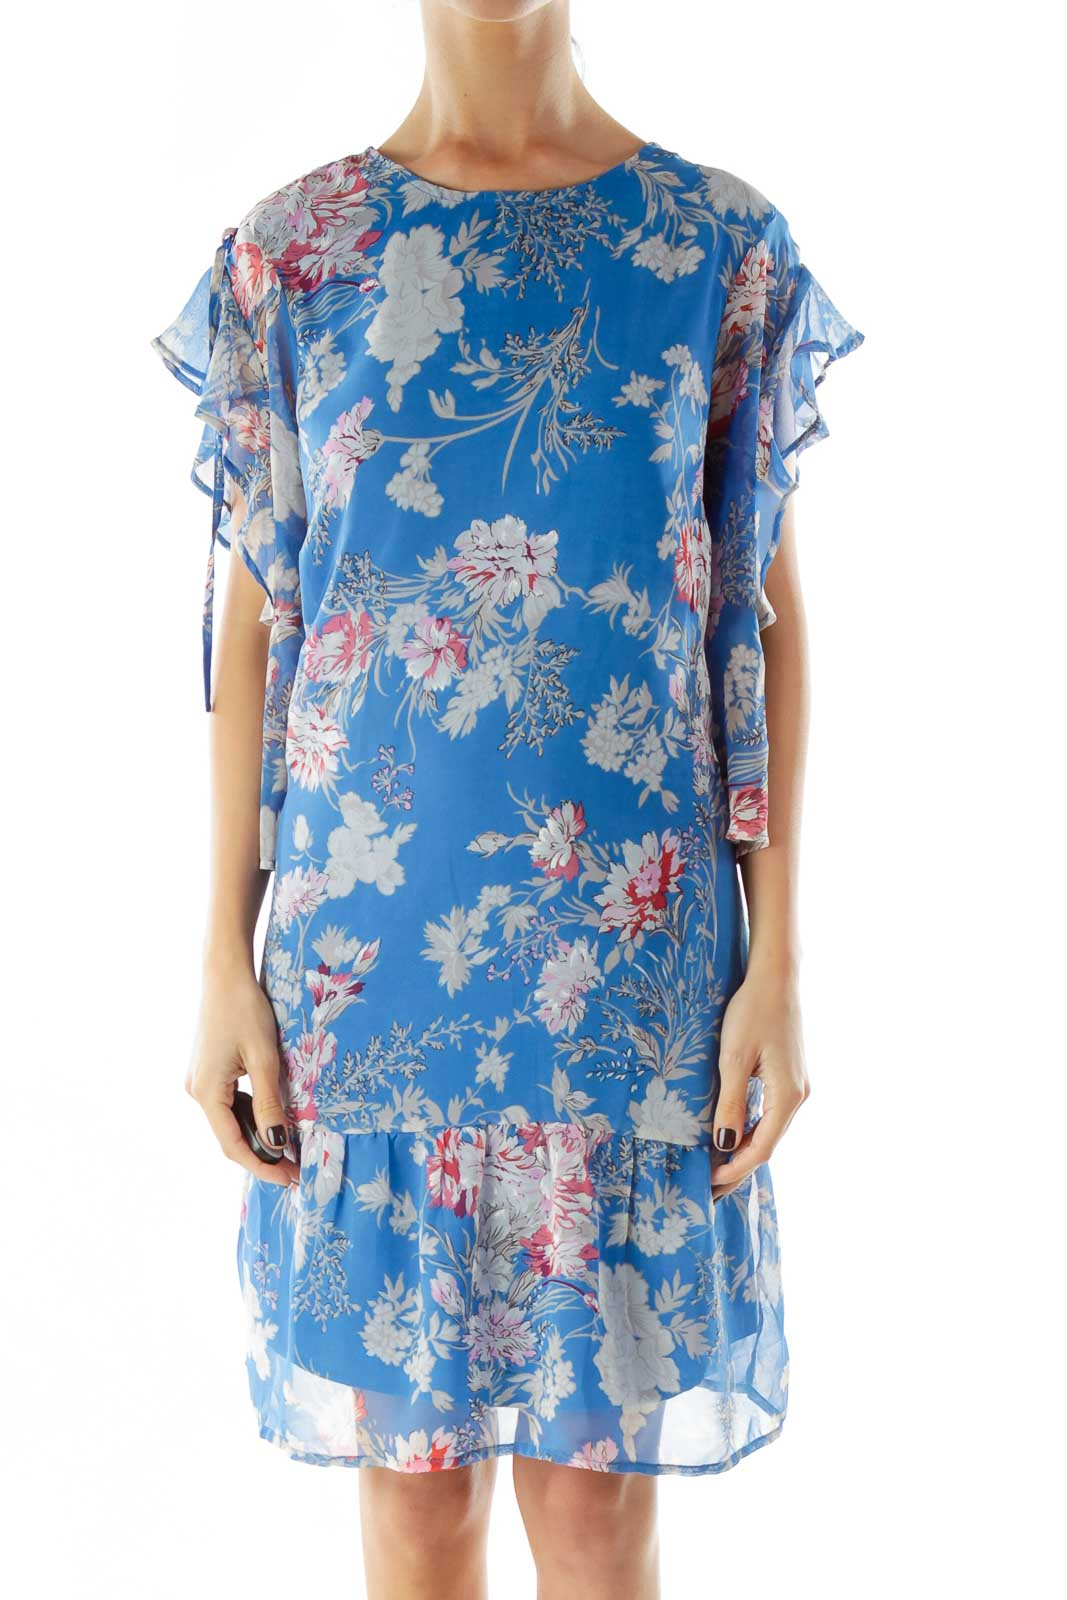 Blue Floral Print Day Dress Front